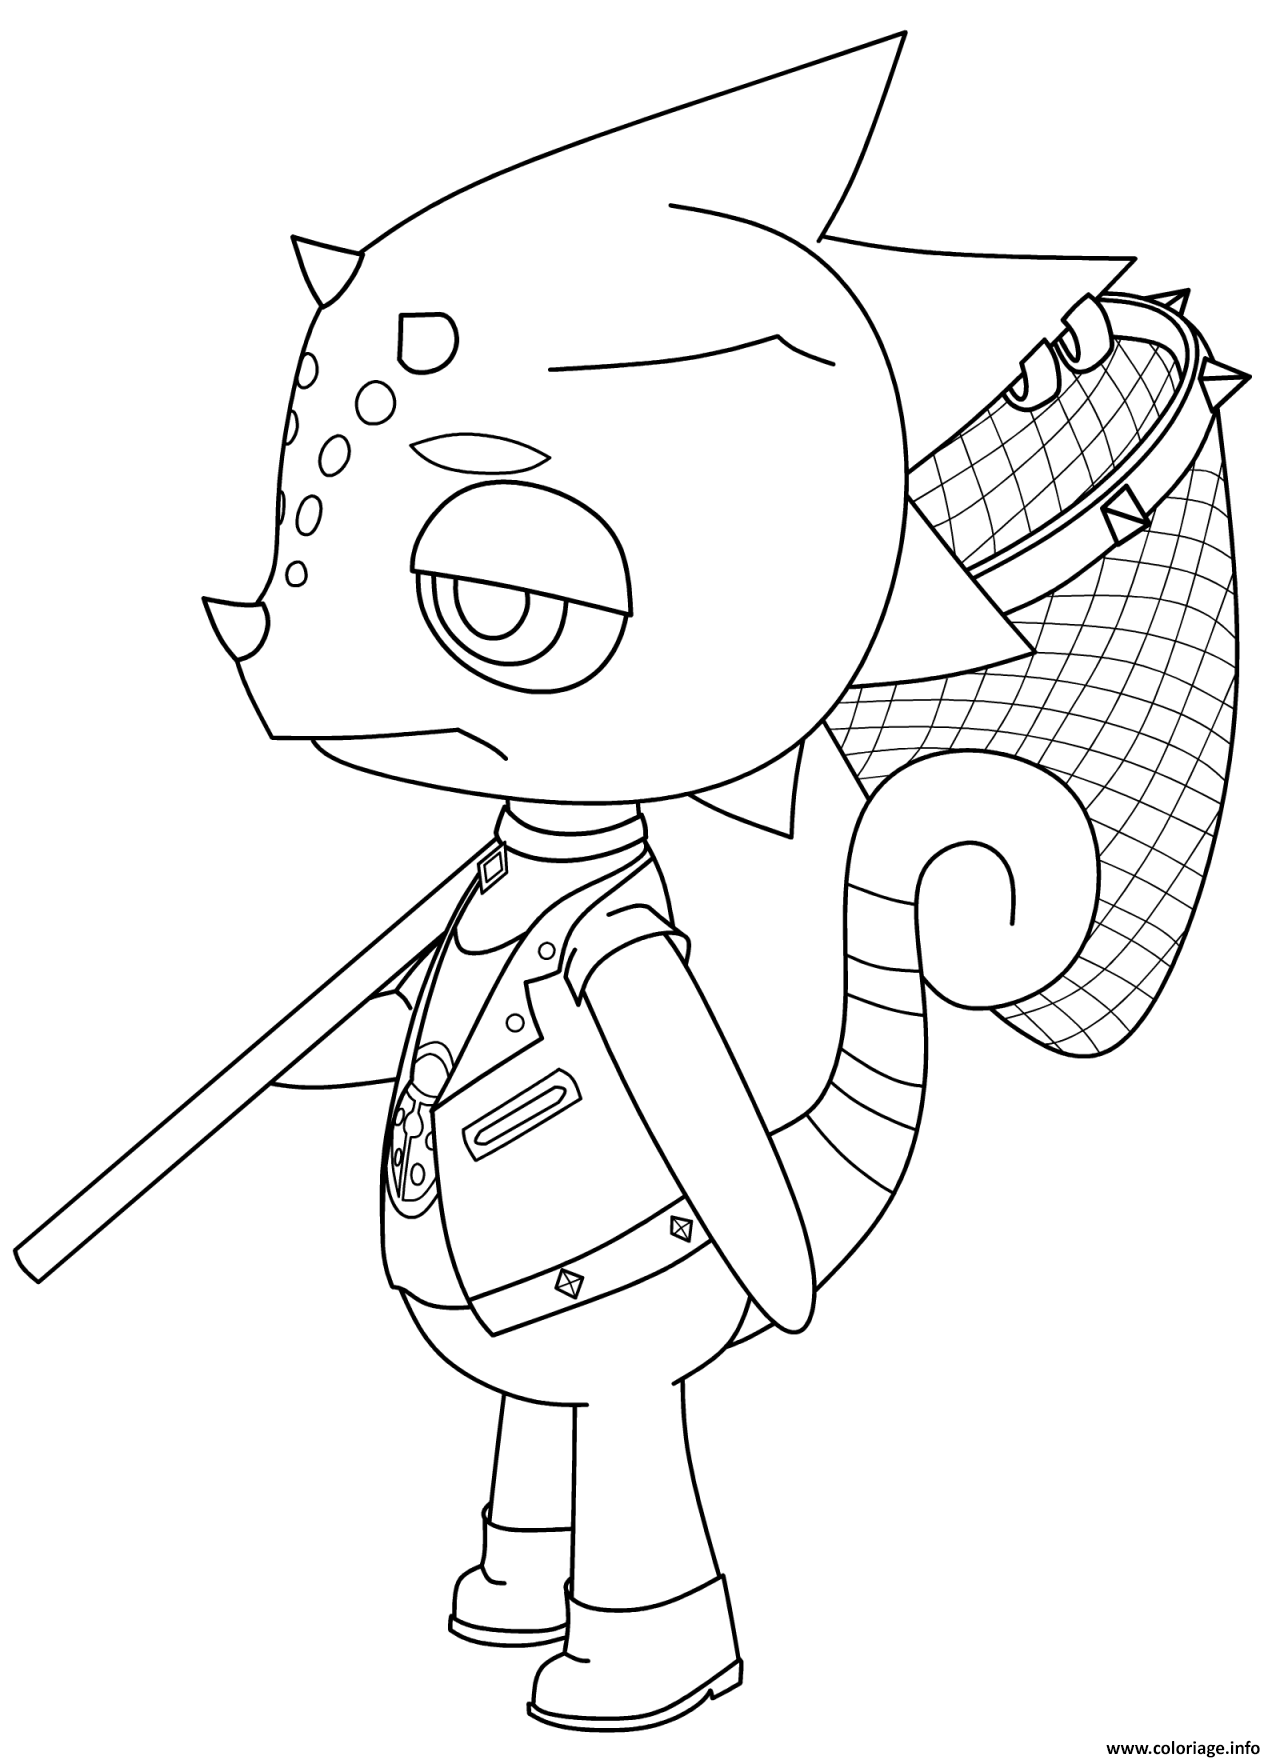 Dessin fan art animal fishing Coloriage Gratuit à Imprimer